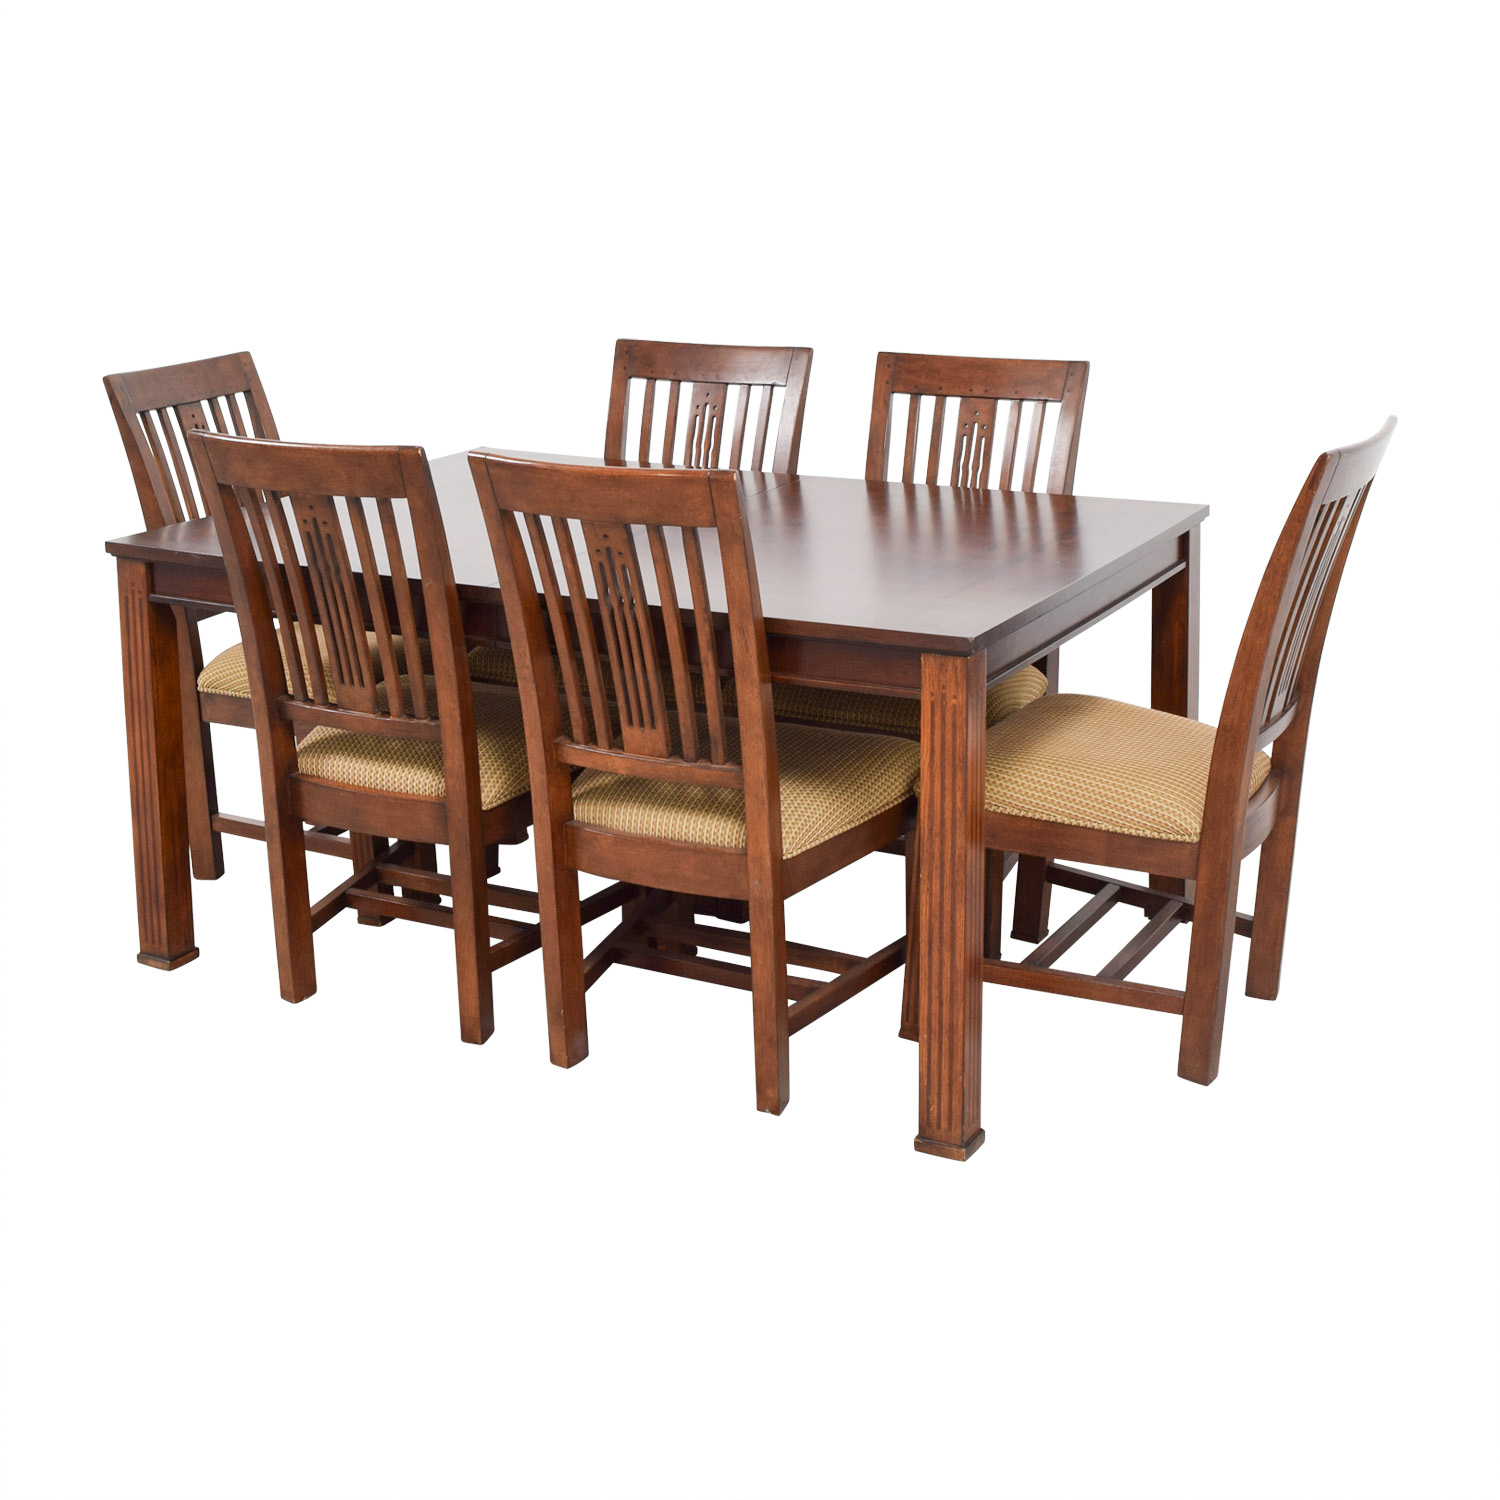 81% OFF   Macyu0027s Macyu0027s Craft Mission Shaker Table And Chairs / Tables